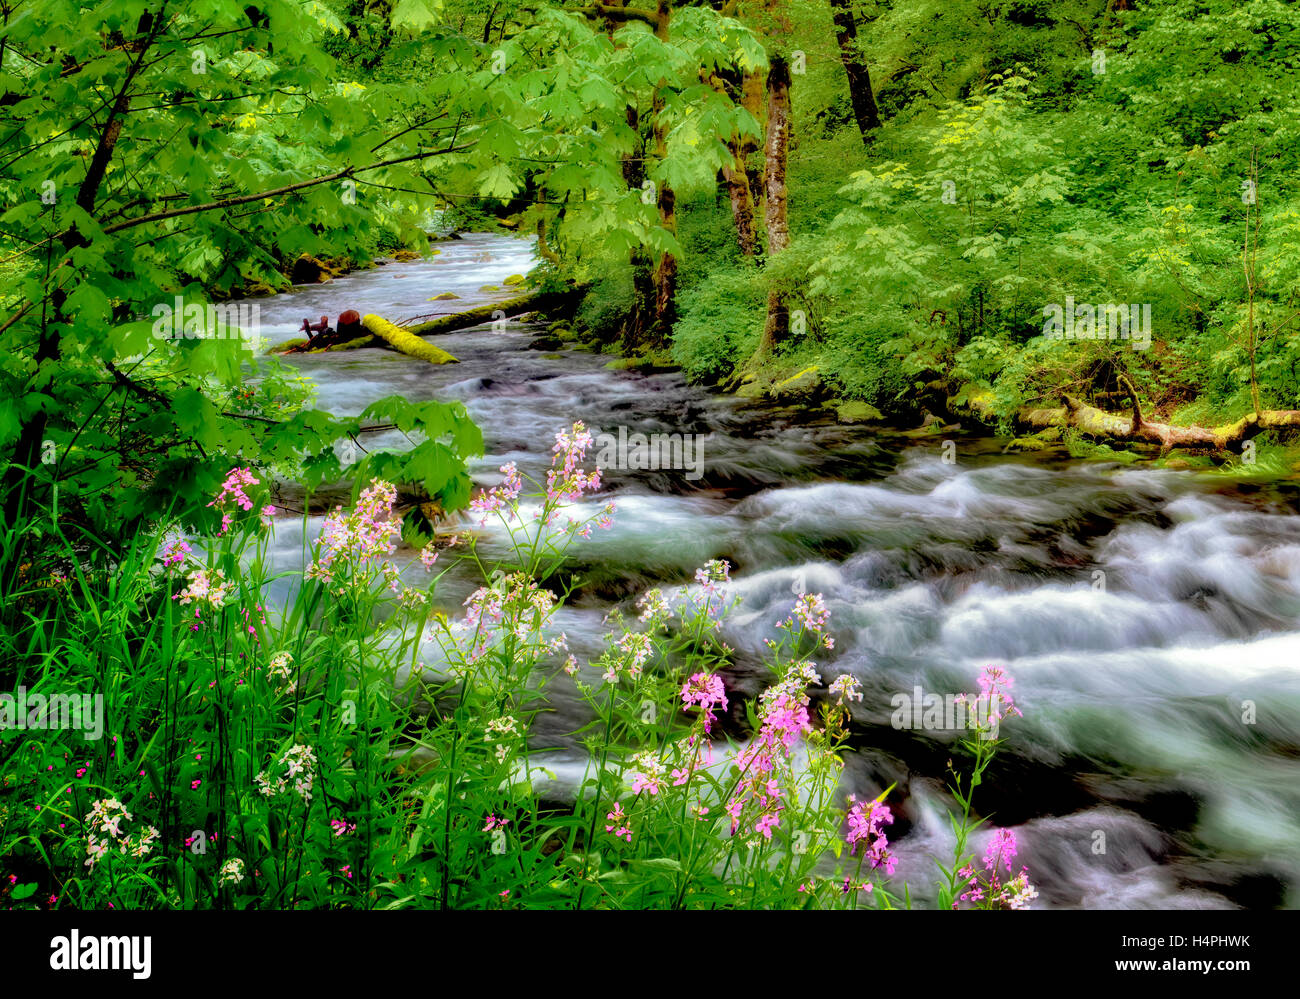 Tanner Creek and Dames Rocket wildflowers. Columbia River Gorge National Scenic Area, Oregon - Stock Image